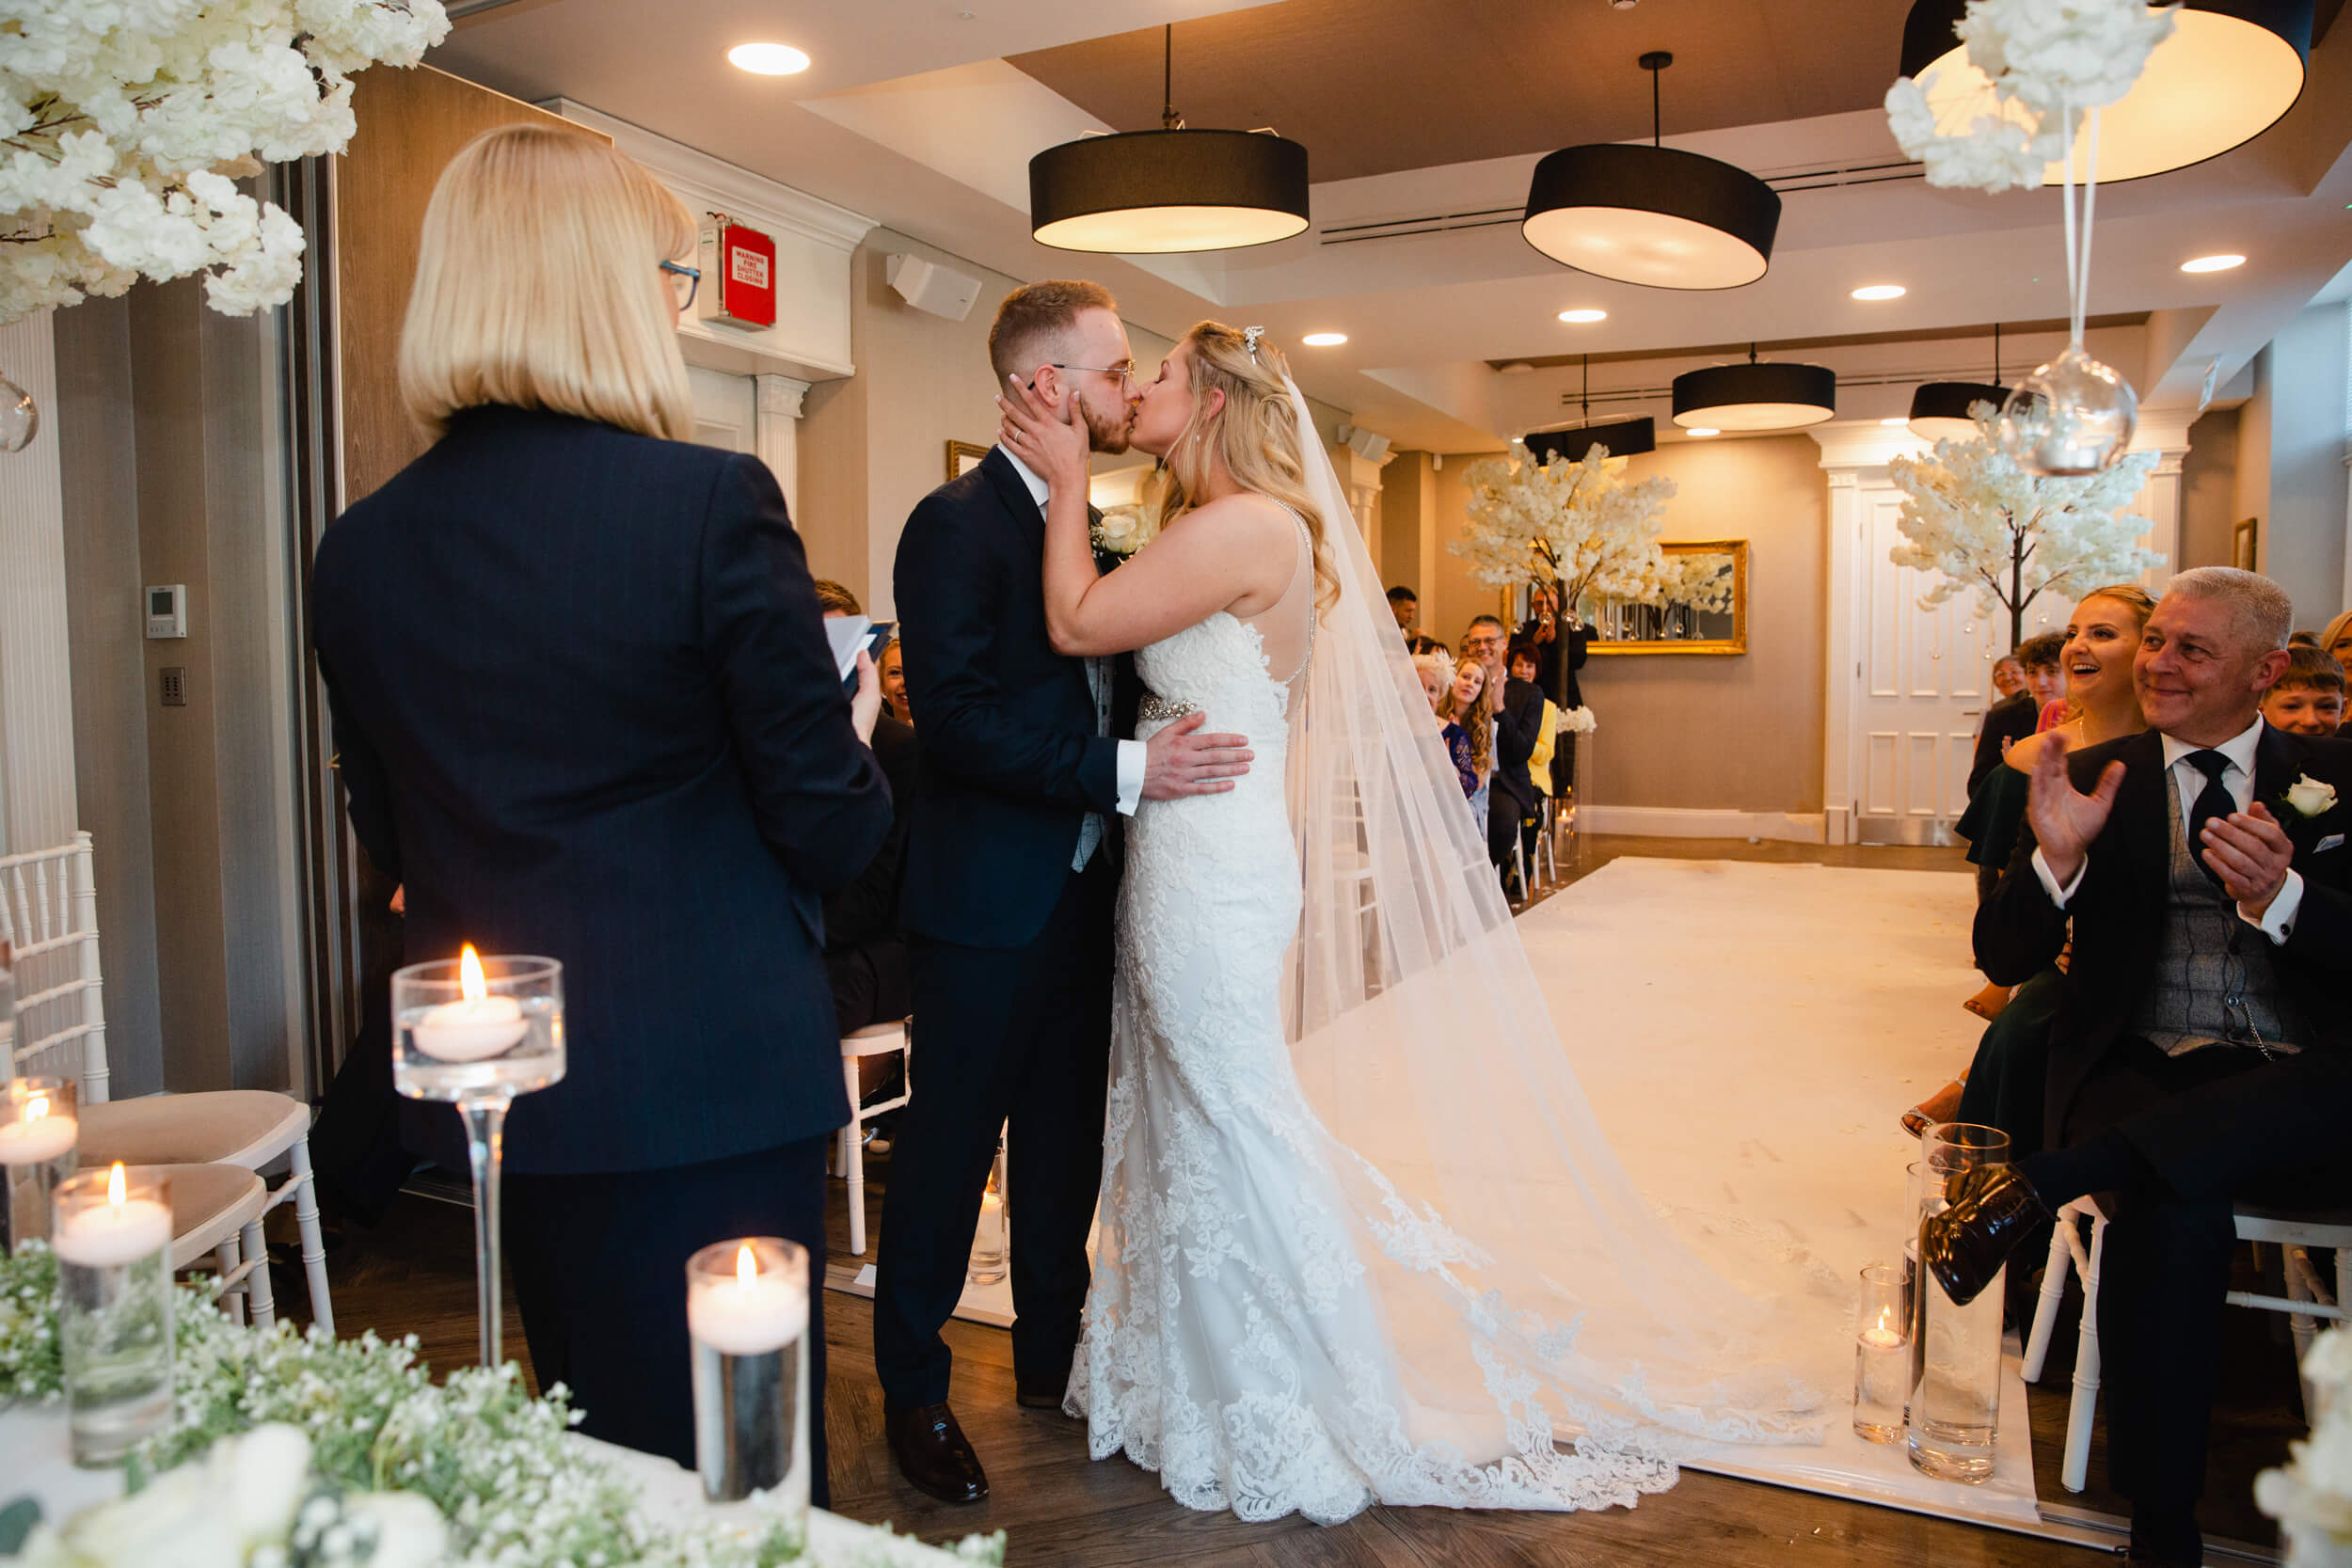 wide angle lens photograph of bride and groom first kiss